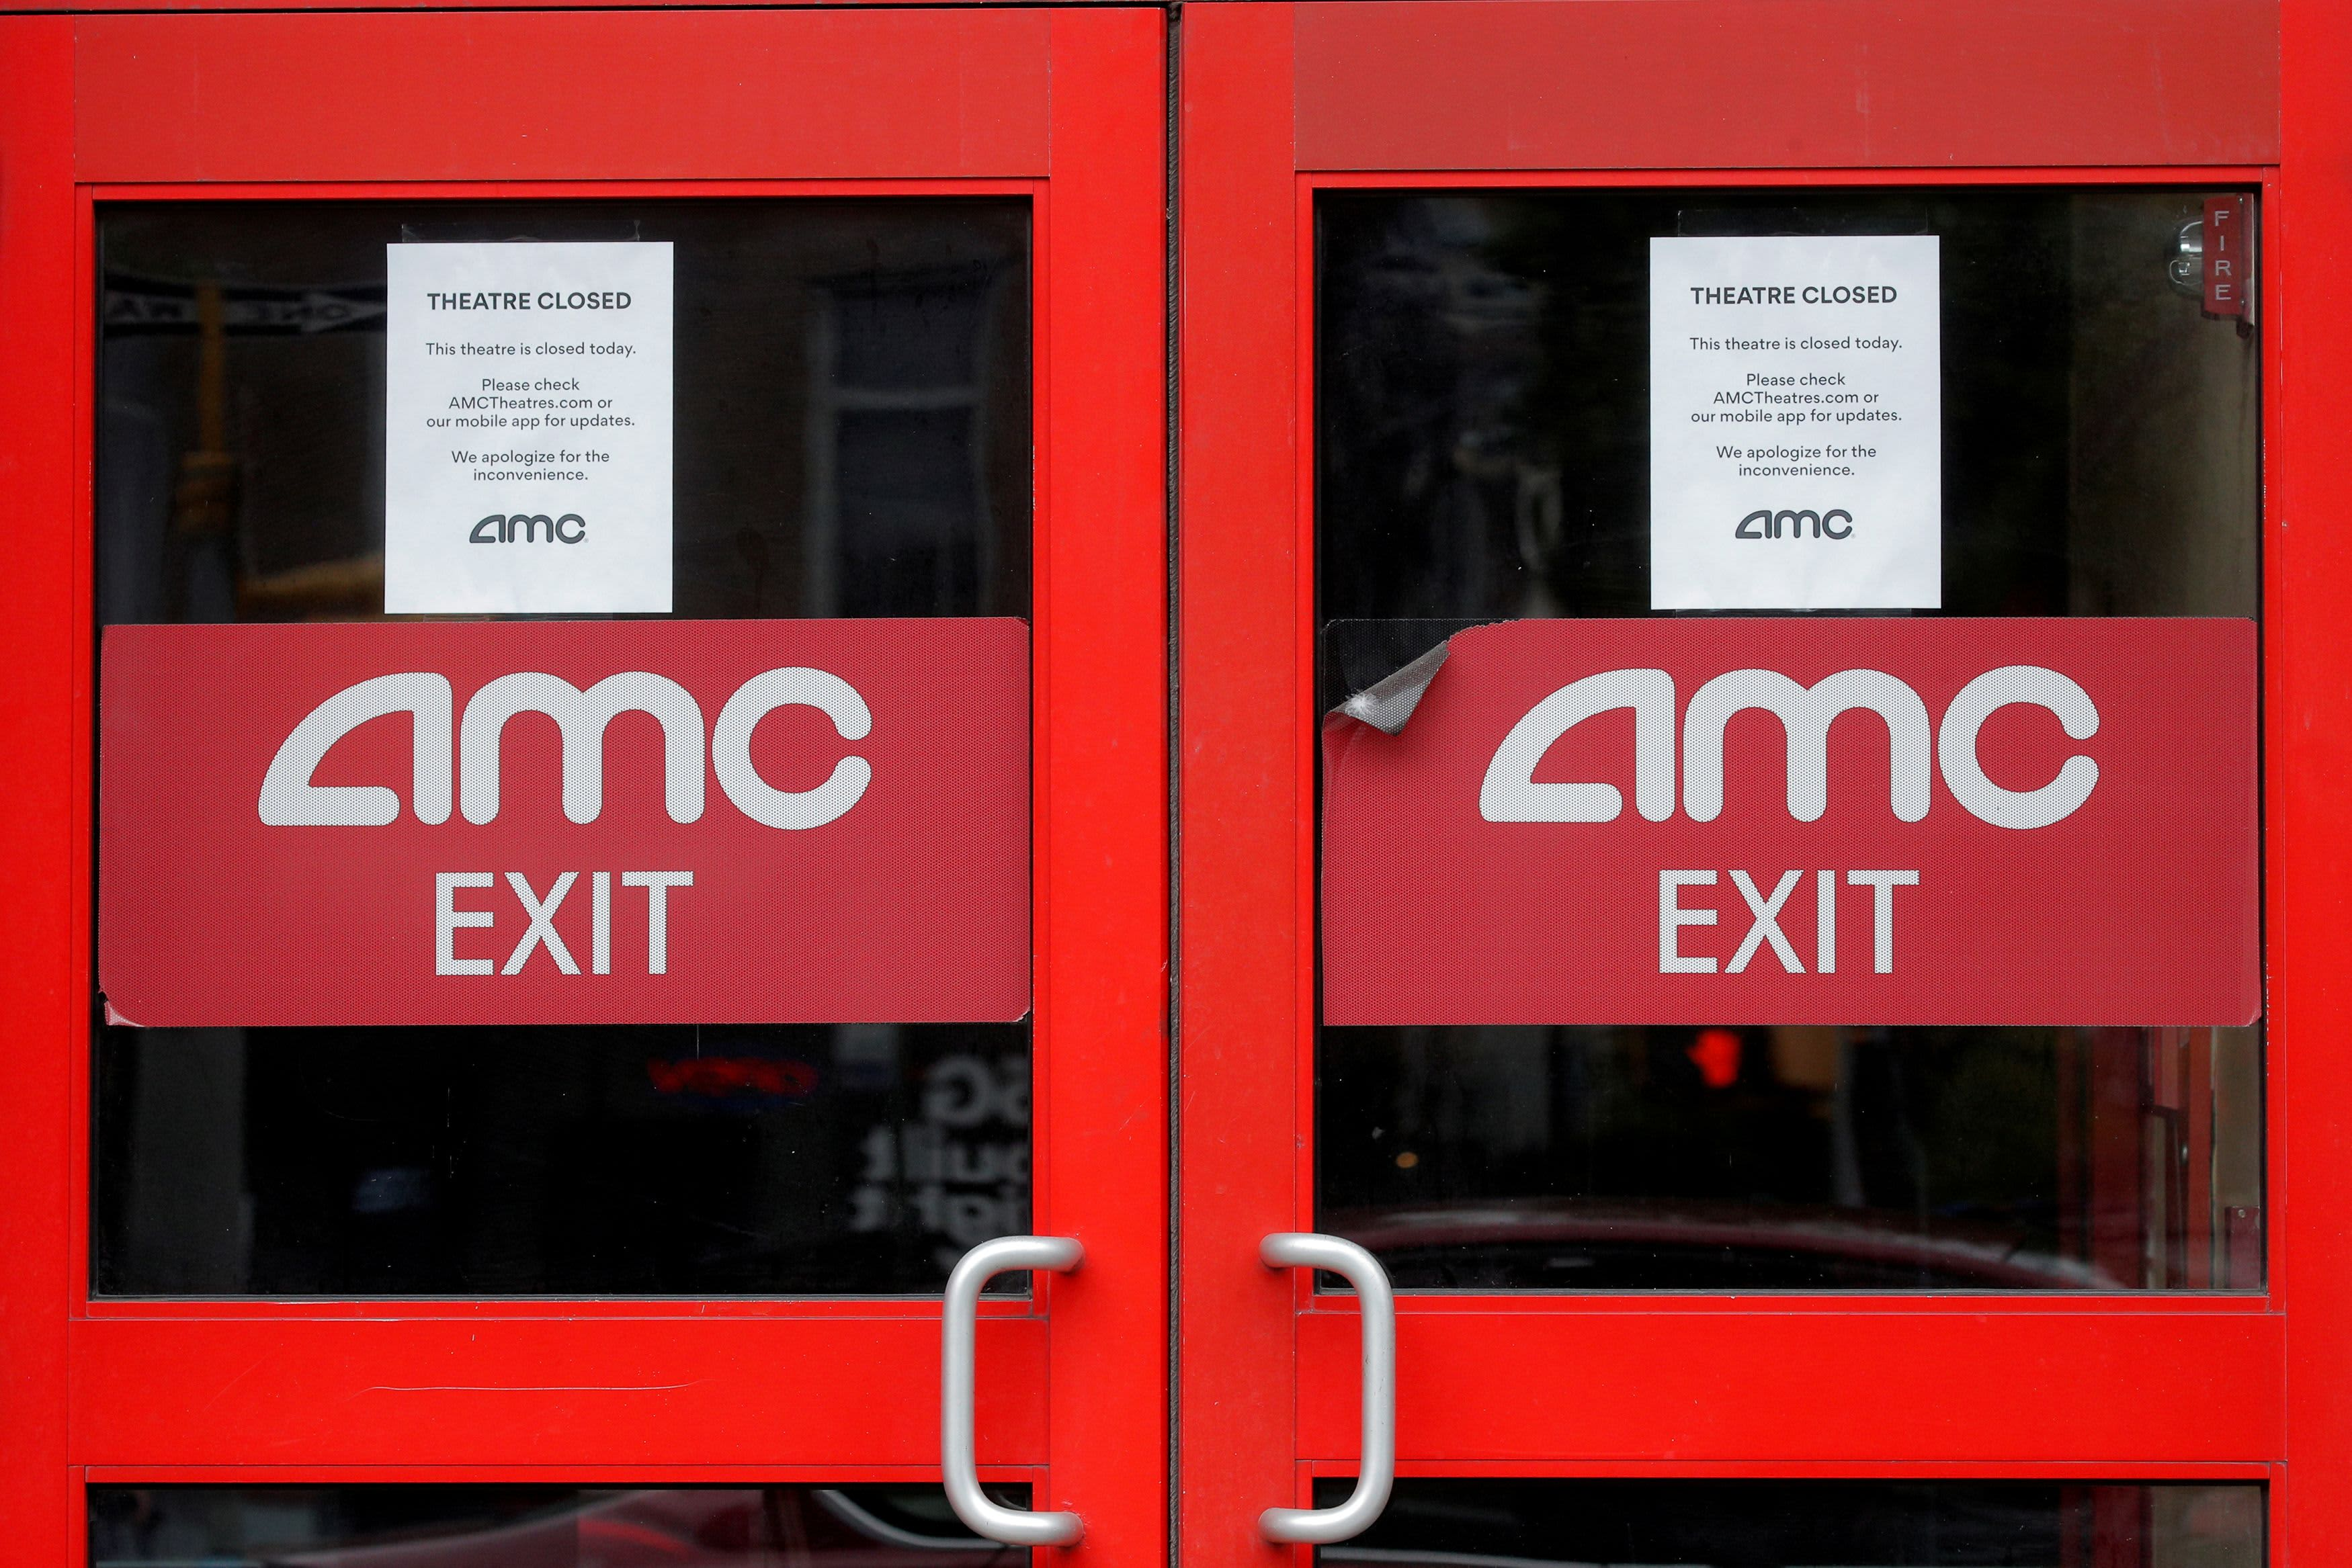 Mudrick Capital no longer owns debt or equity in AMC, sources say